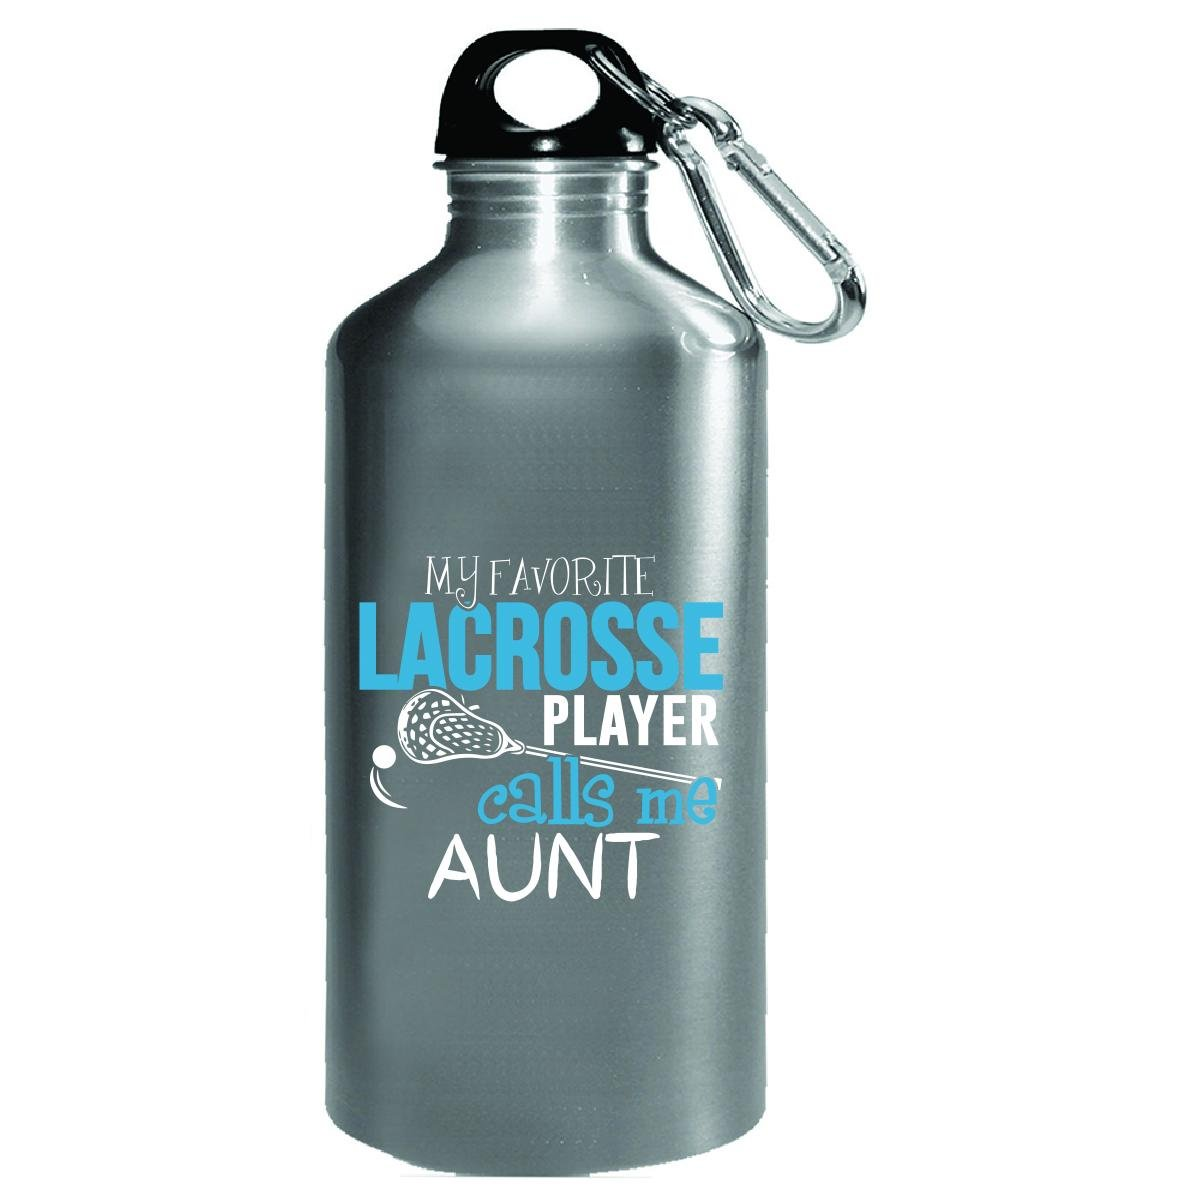 My Favorite Lacrosse Player Calls Me Aunt - Water Bottle